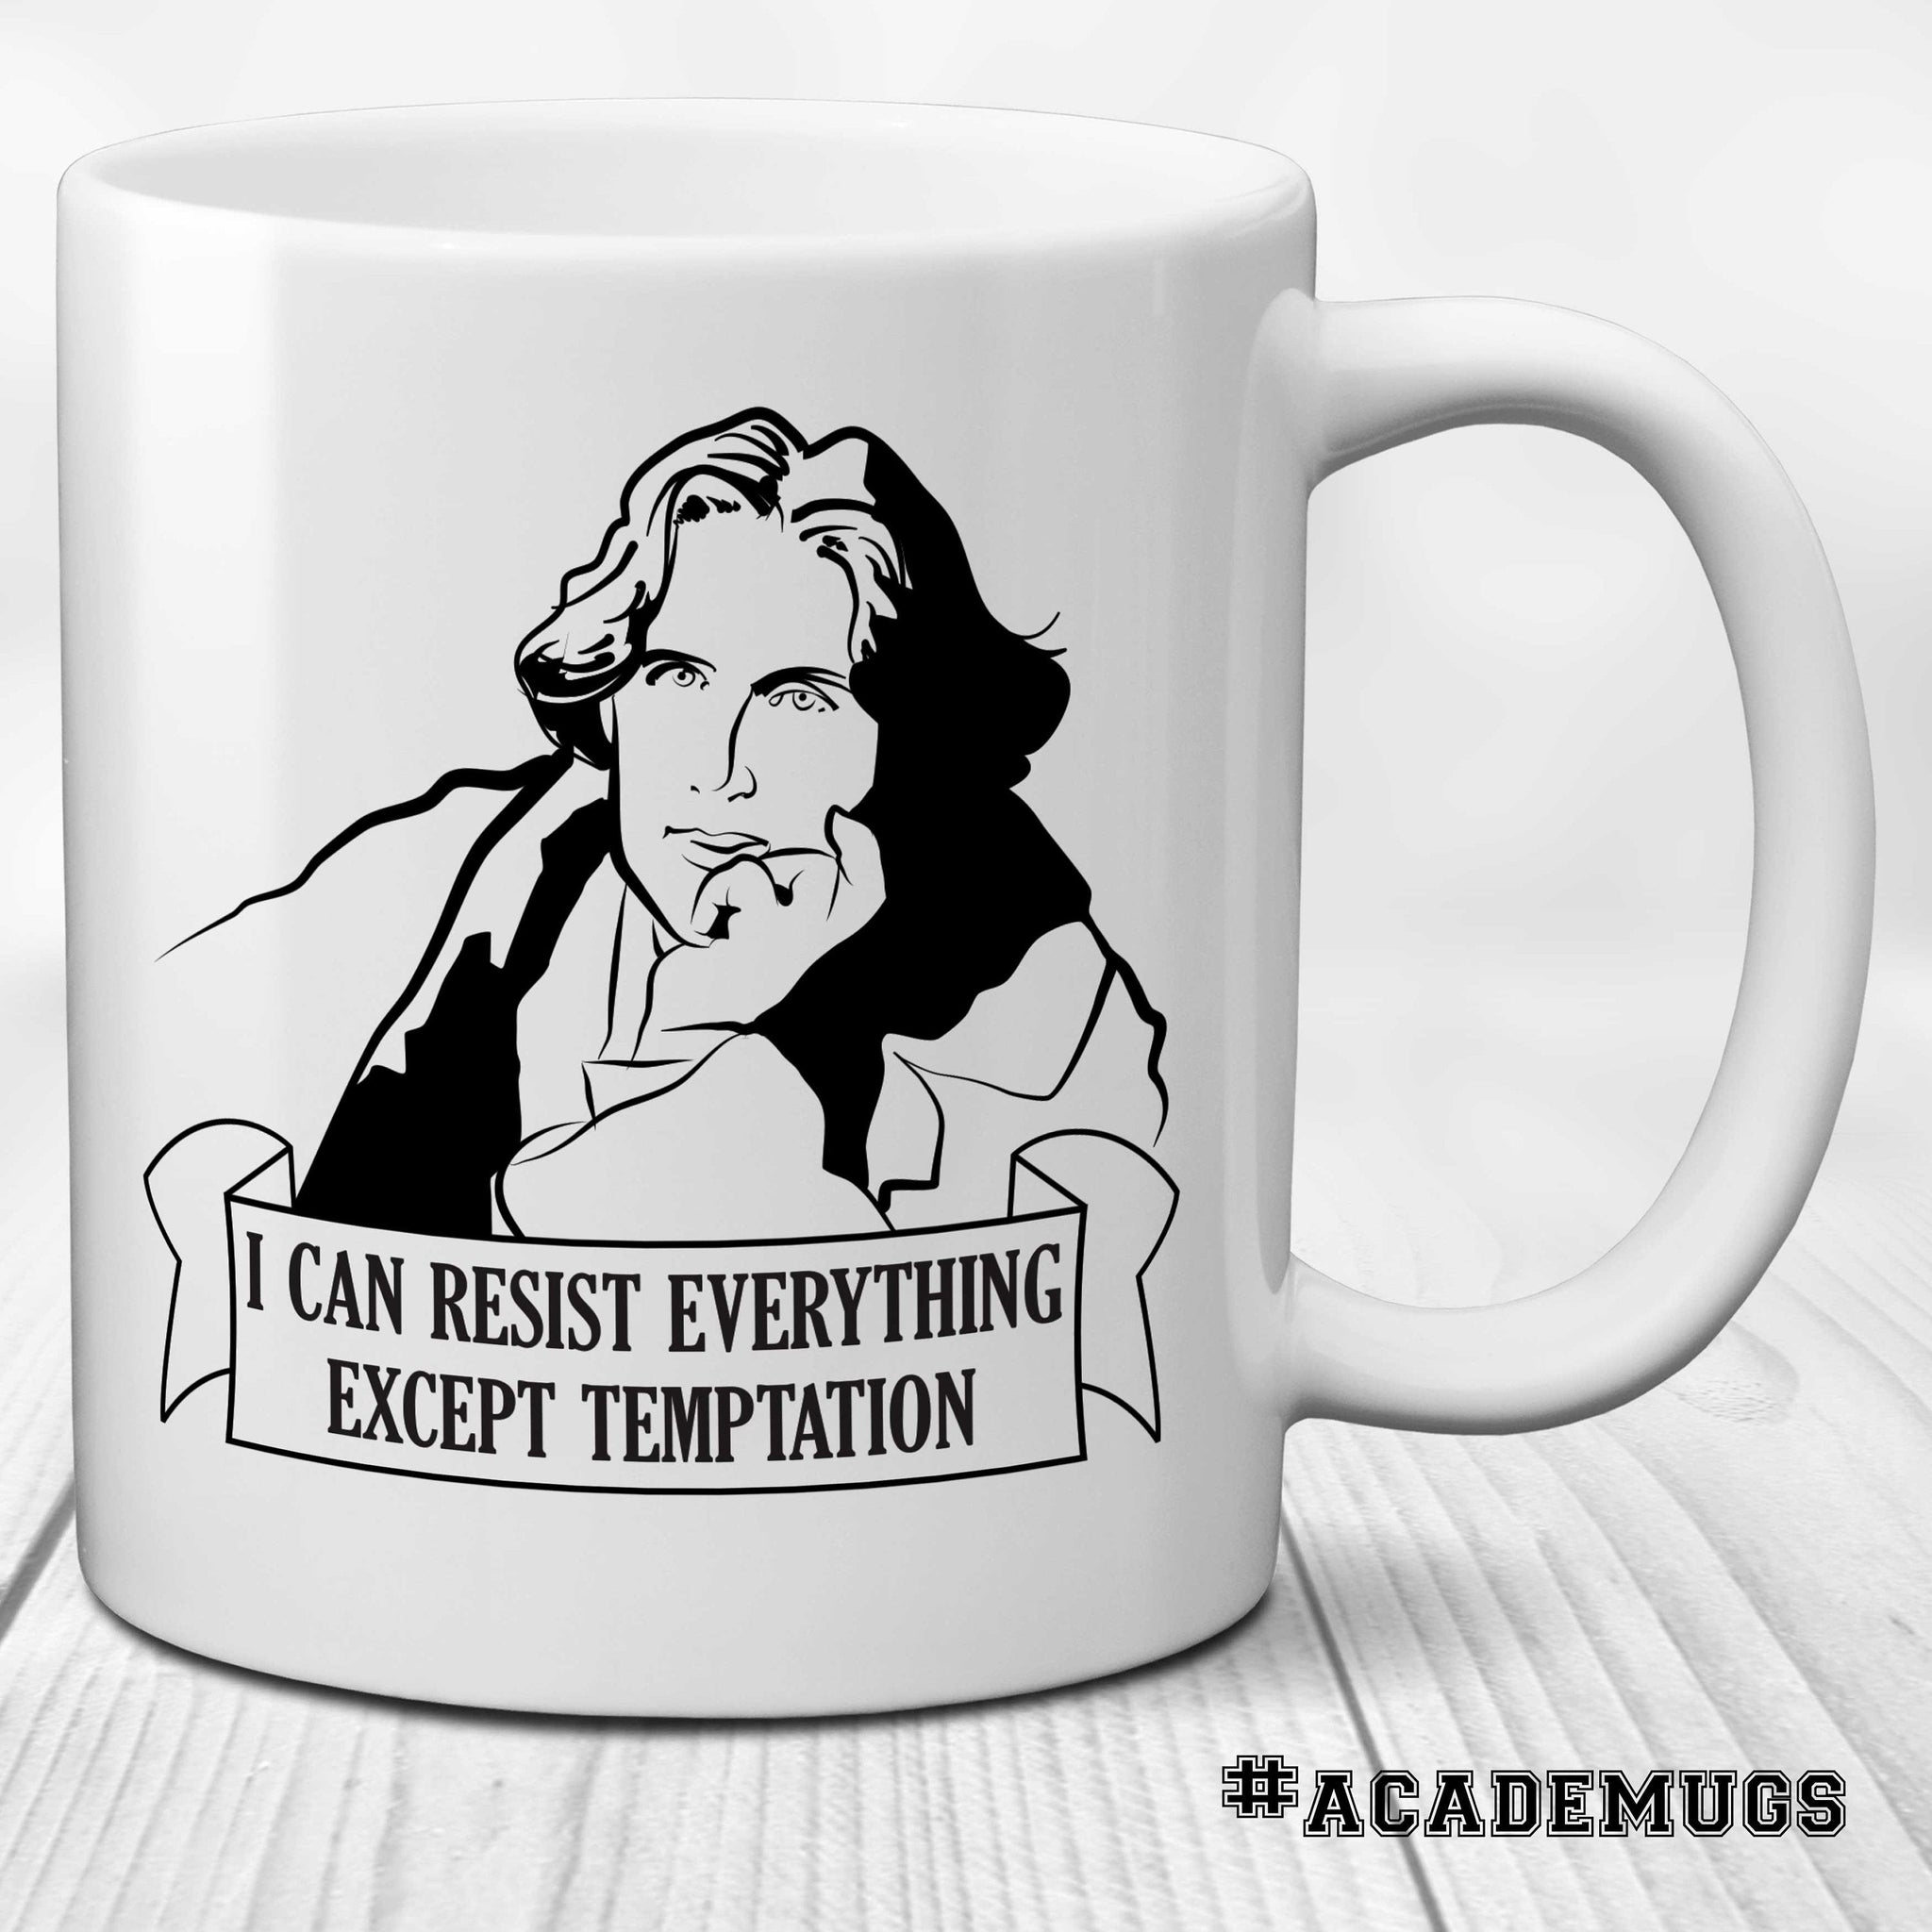 Oscar Wilde Mug: I can resist everything except temptation